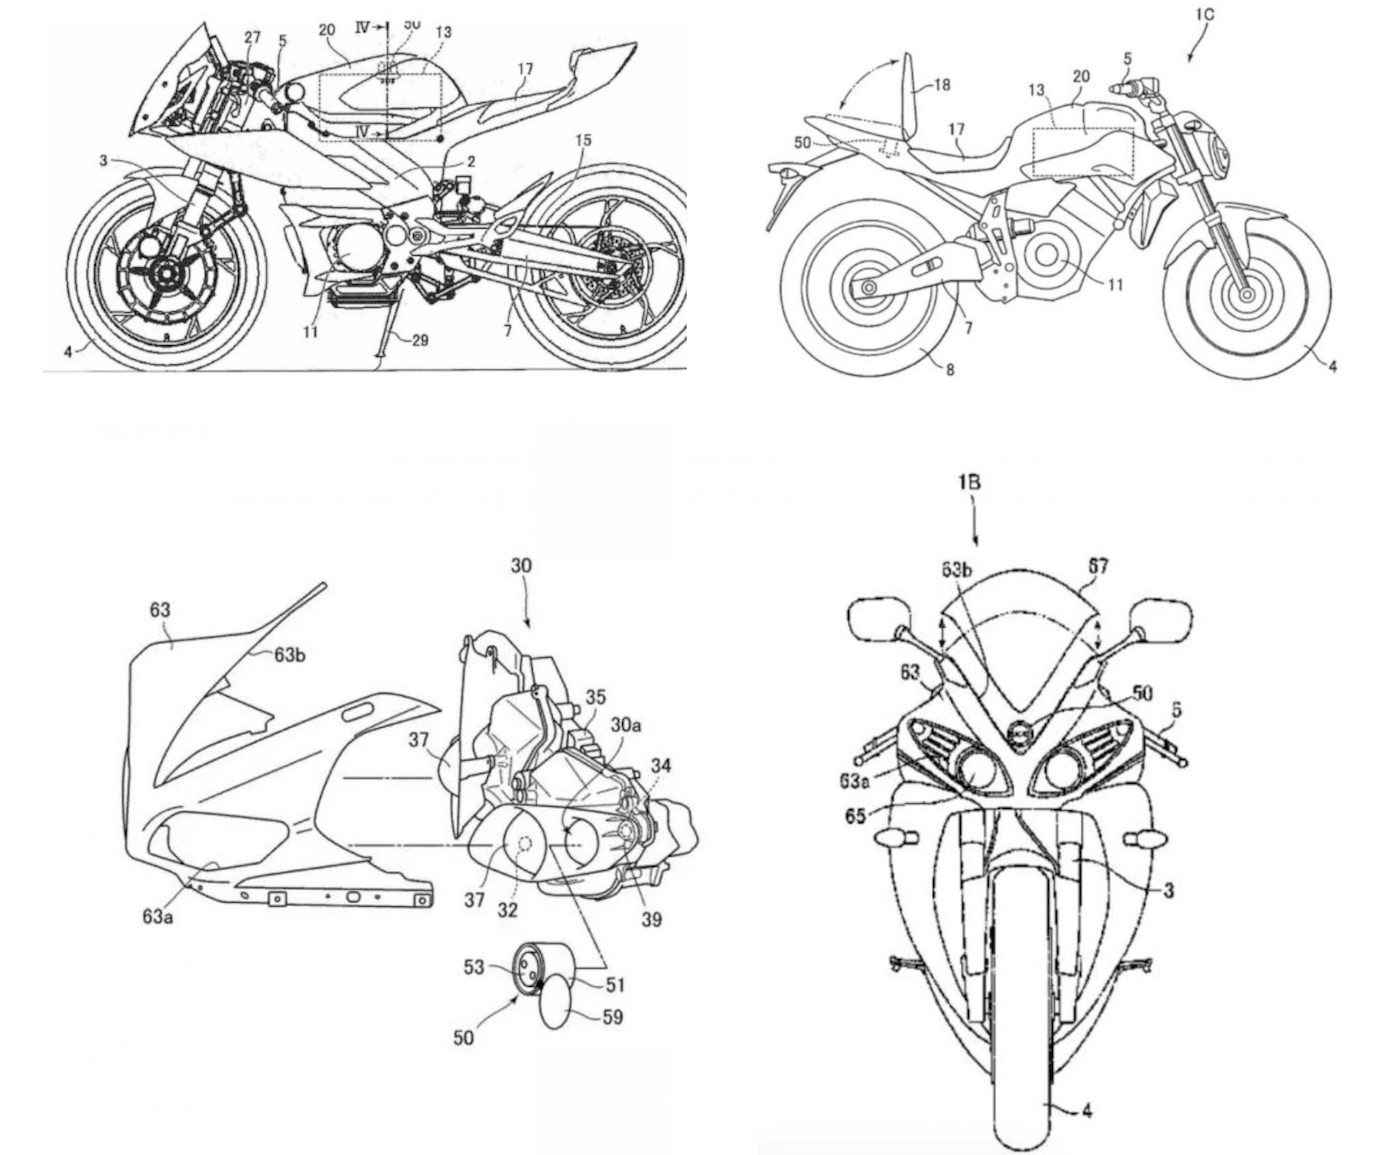 Yamaha electric motorcycle patents